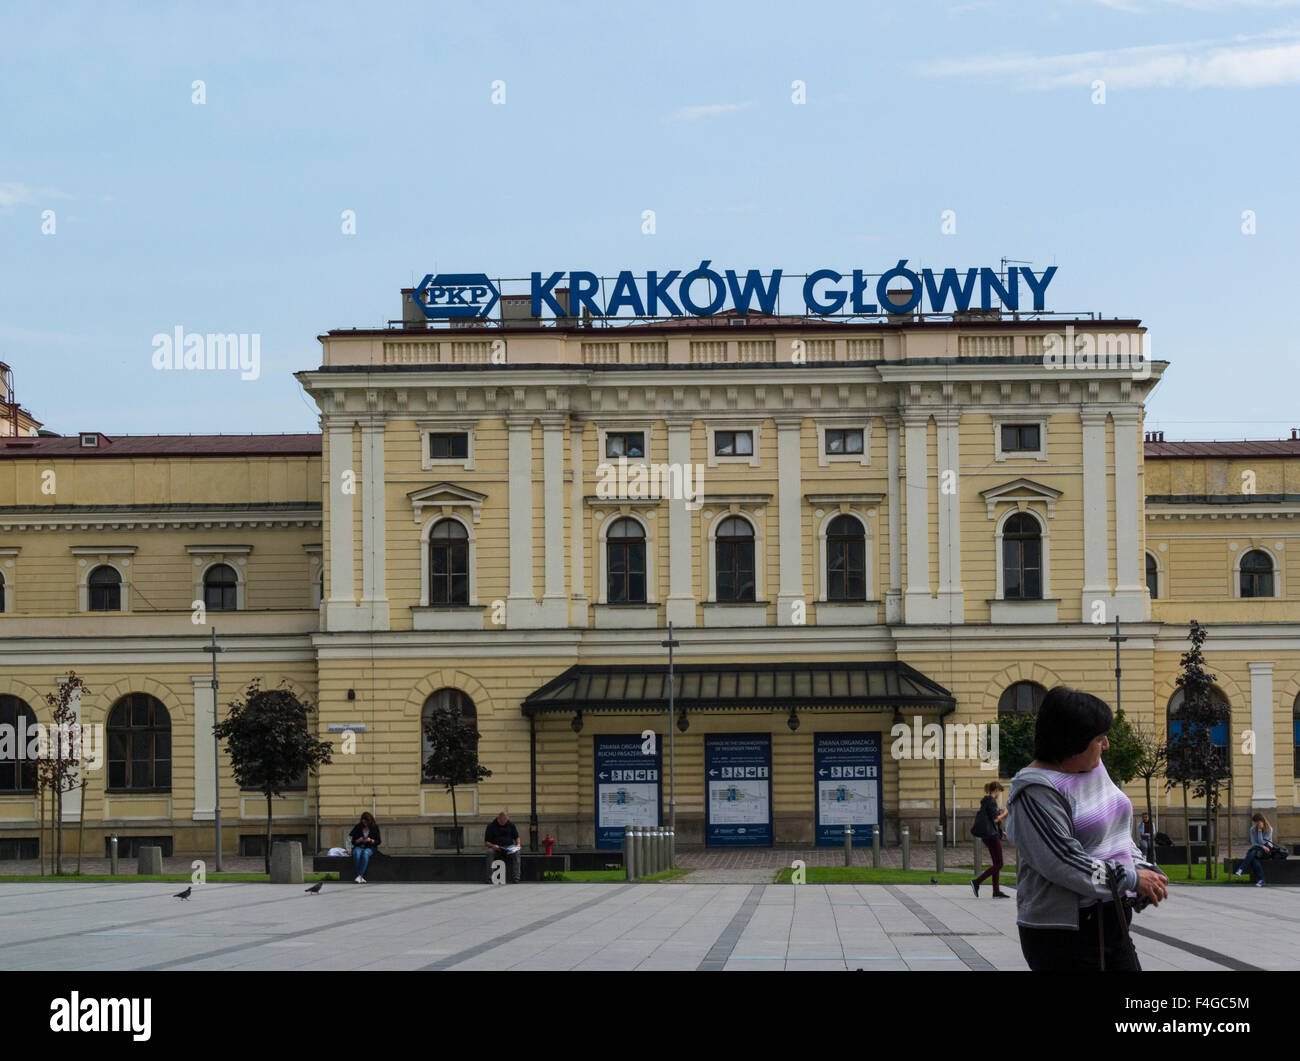 Kraków Główny Osobowy largest and most centrally located Railway station Poland built between 1844 - 1847  with Stock Photo